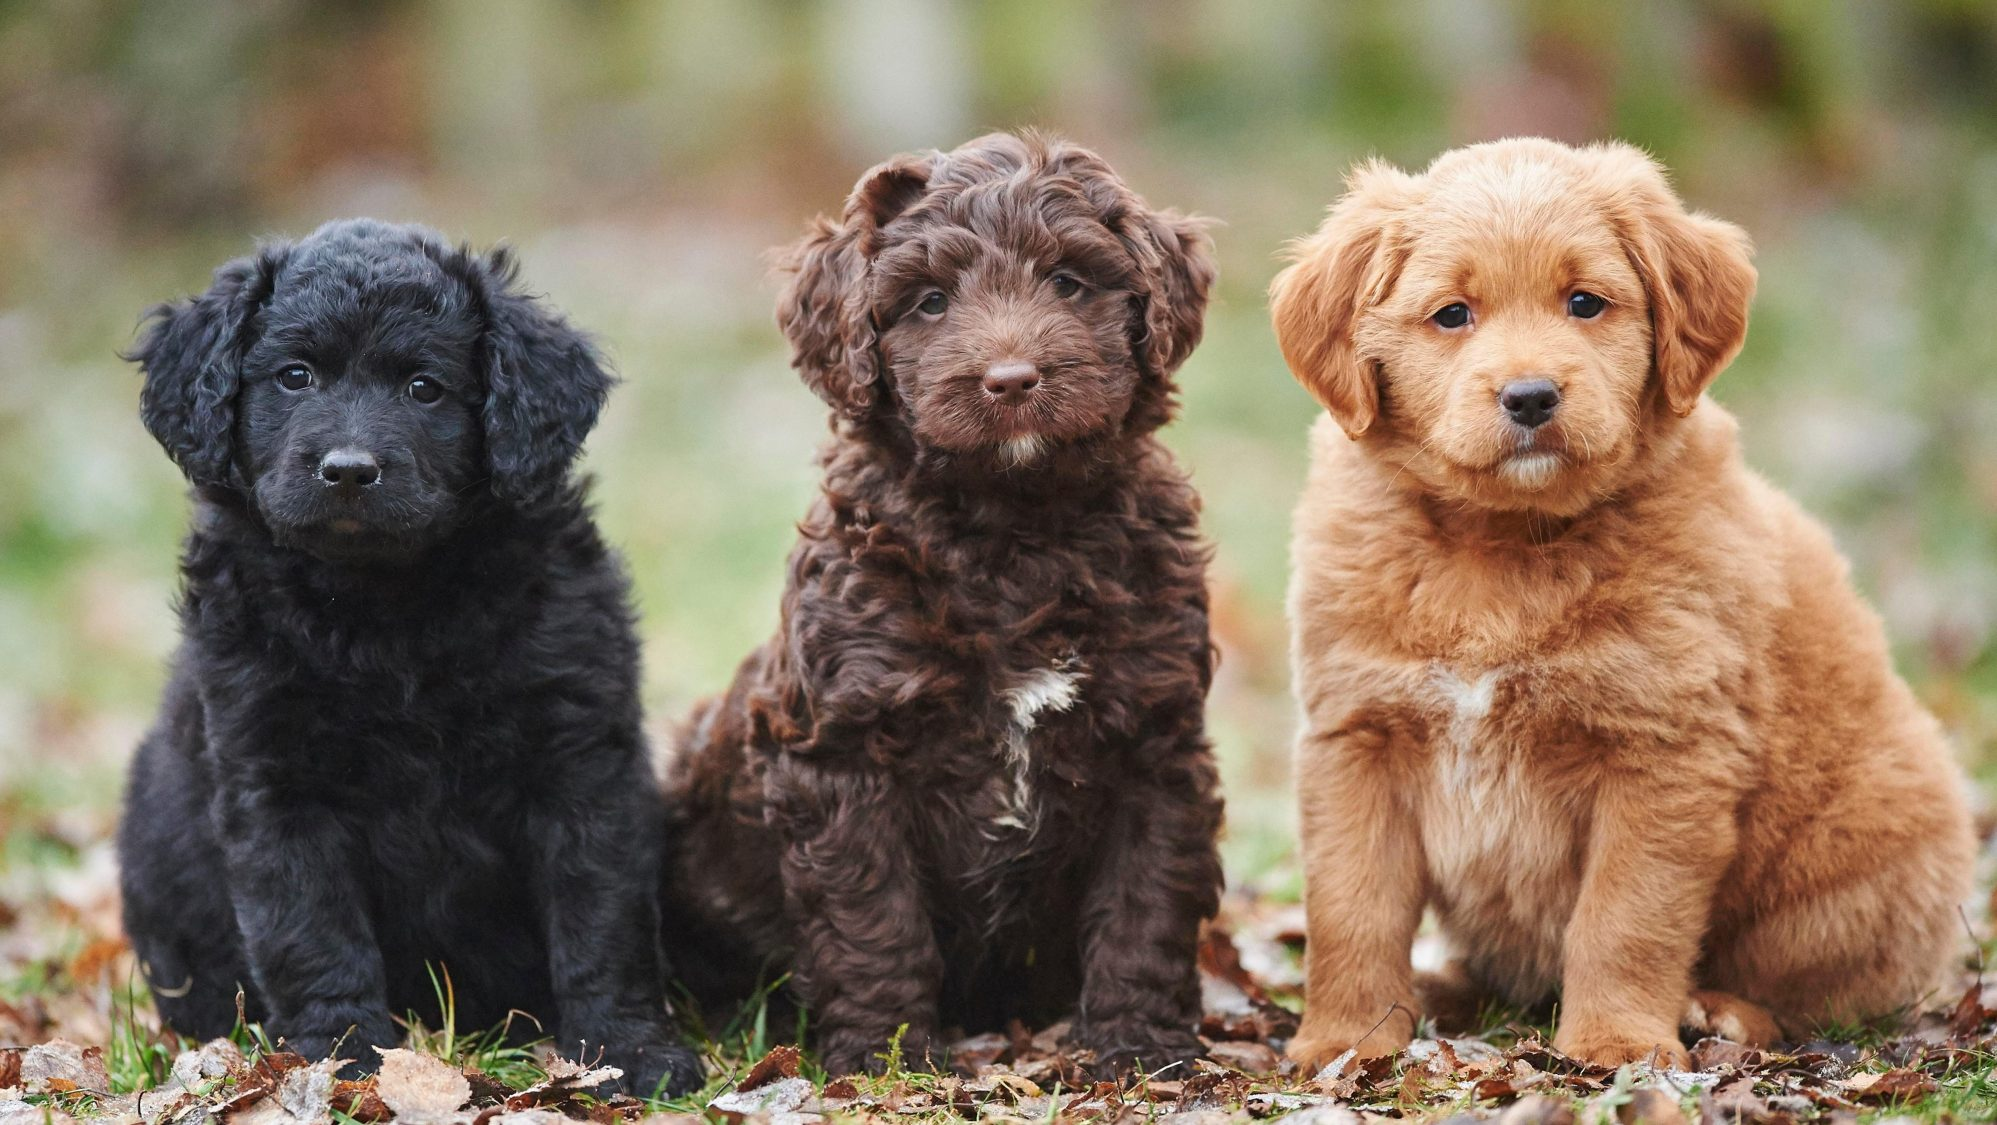 Instagram's most popular dog breed has officially been revealed